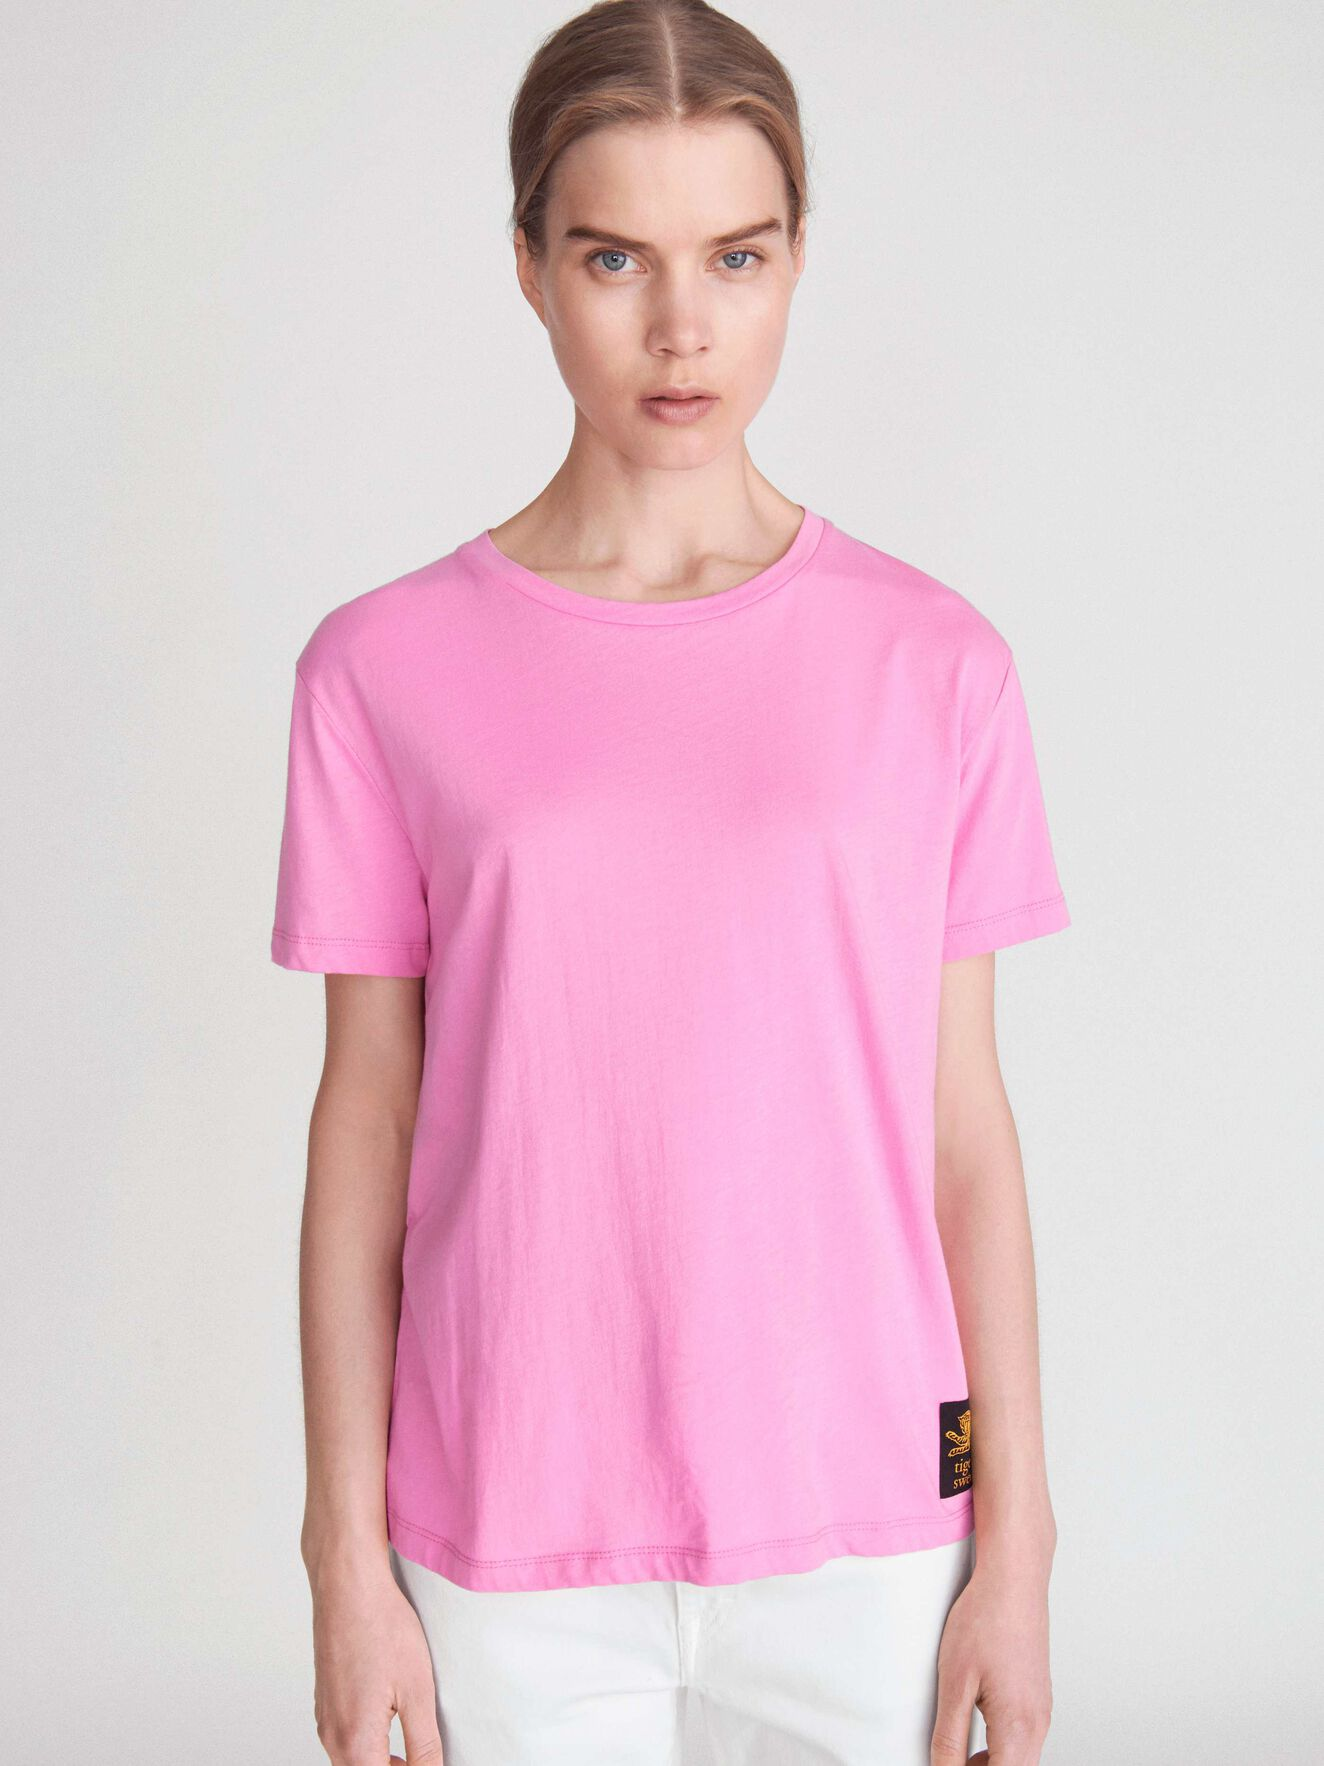 Dawn T-Shirt in Pink from Tiger of Sweden